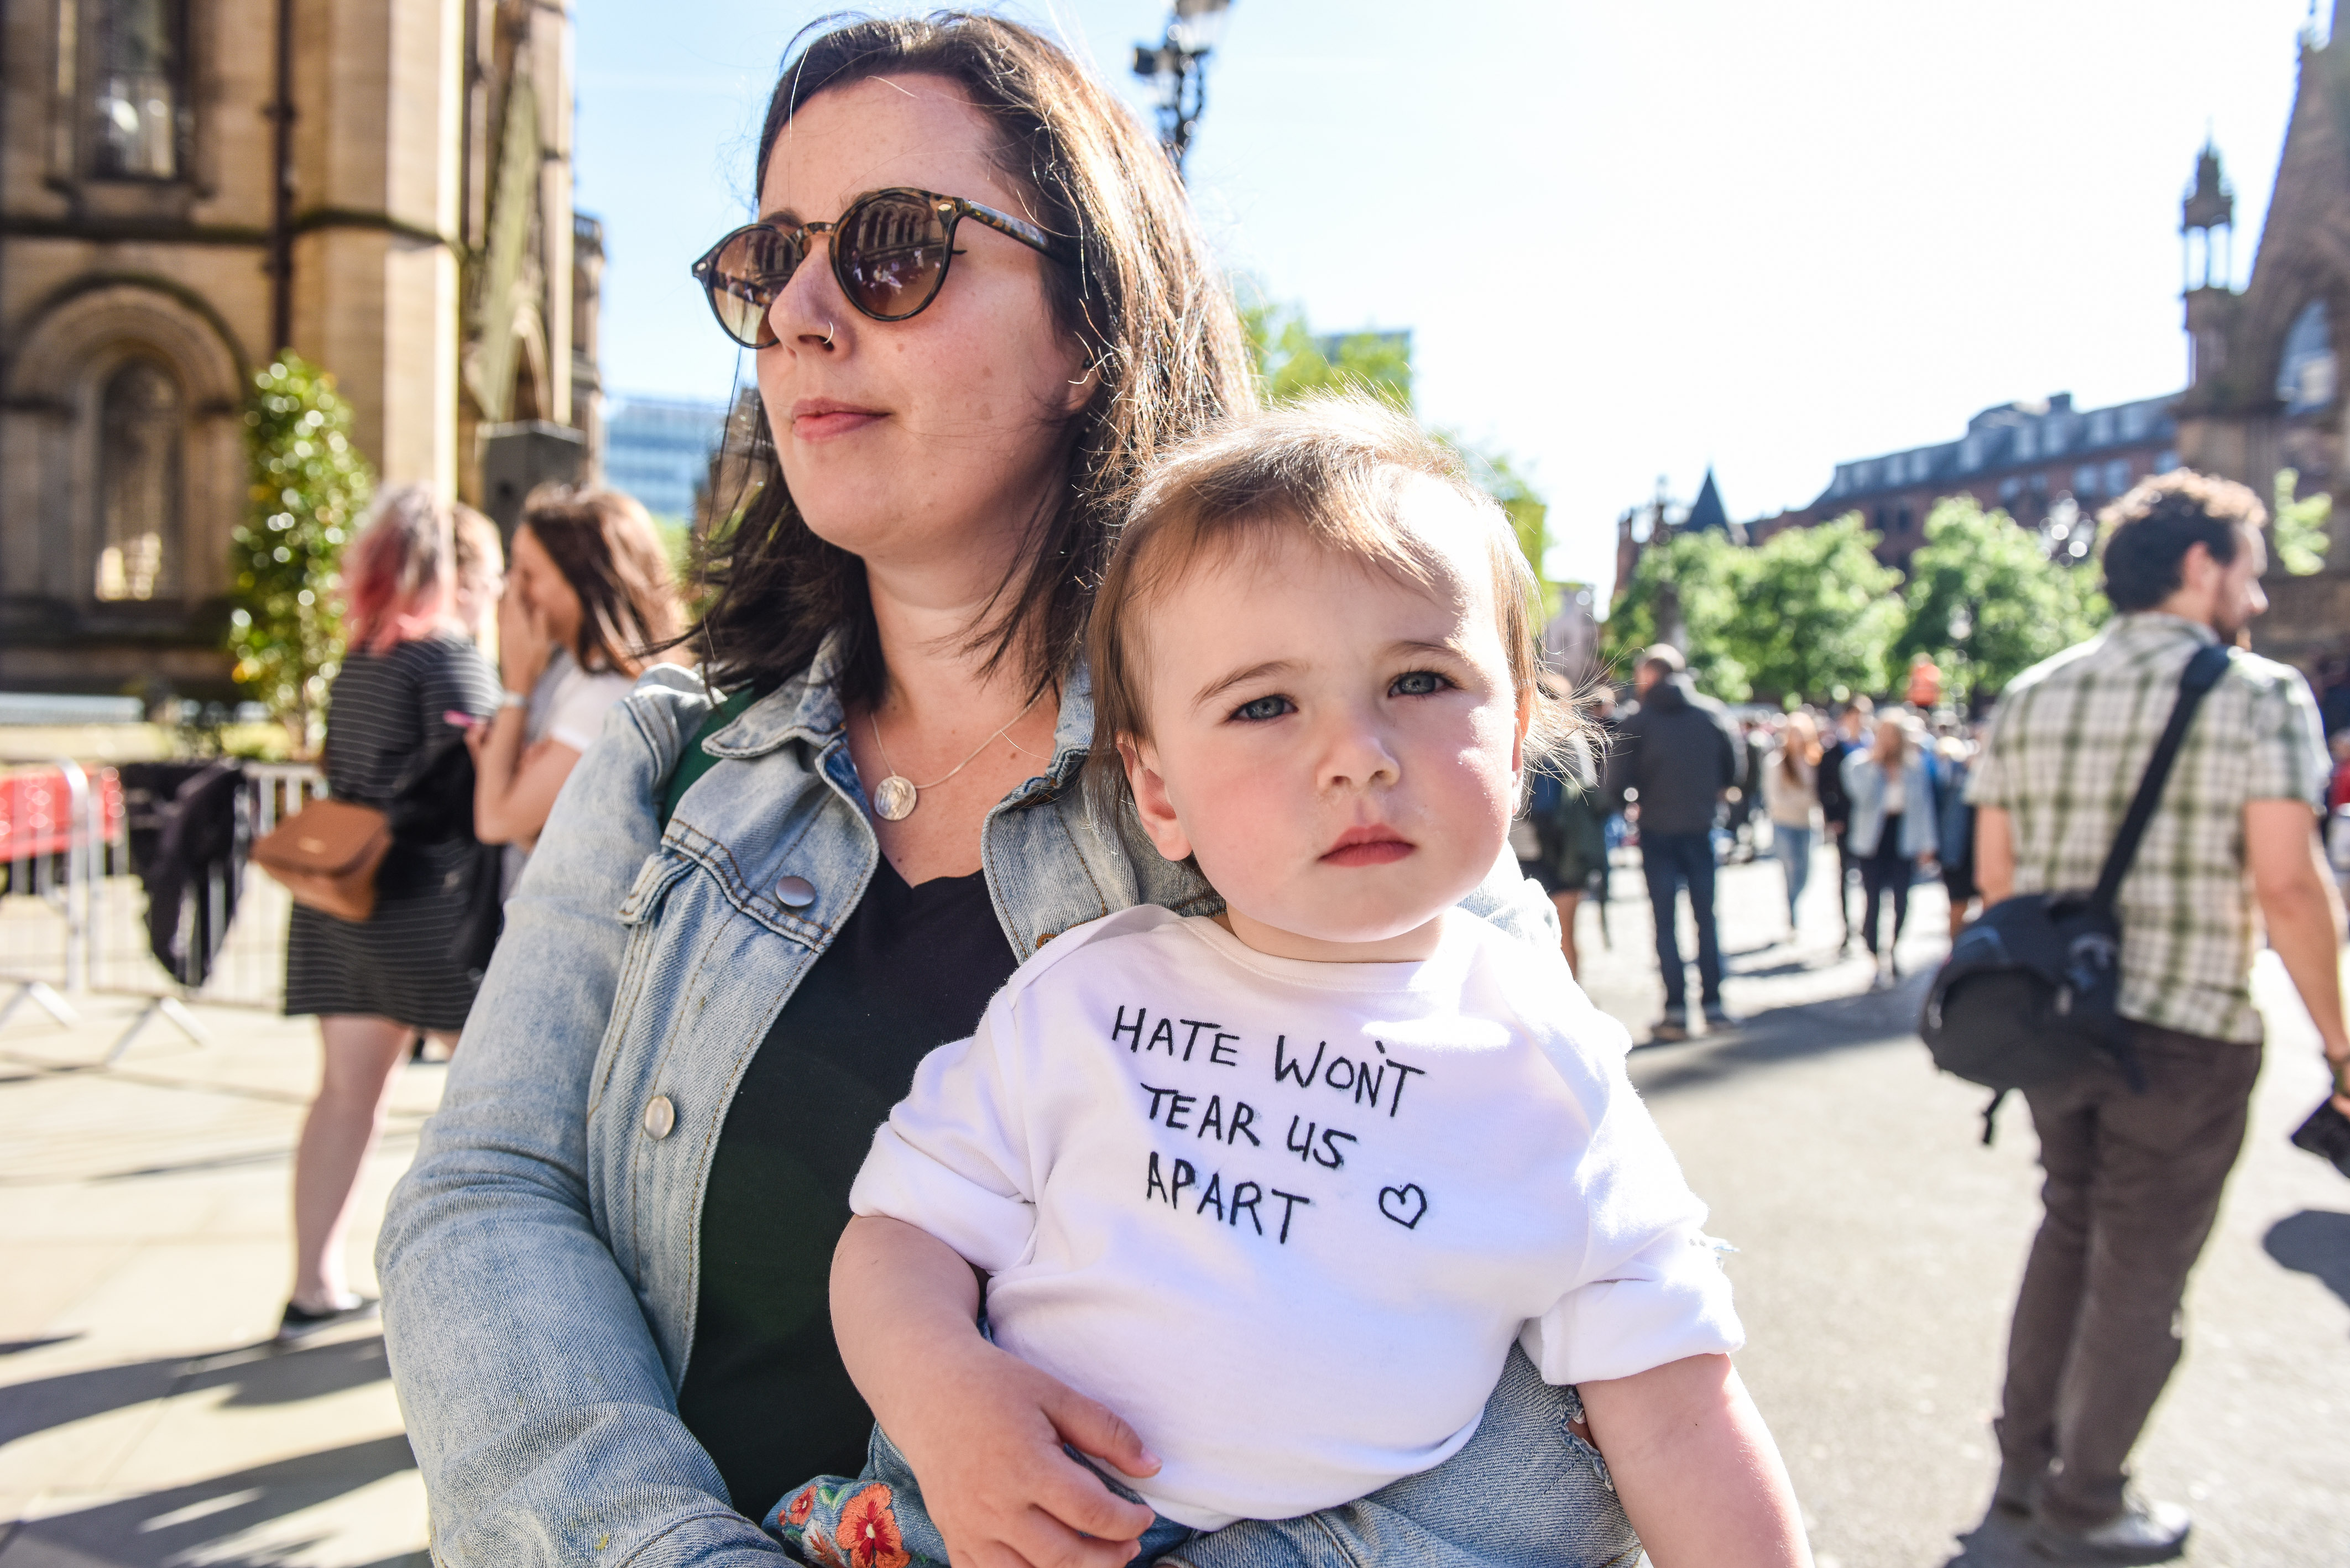 VIGIL HELD FOR THE VICTIMS OF THE MANCHESTER ARENA TERROR ATTACK